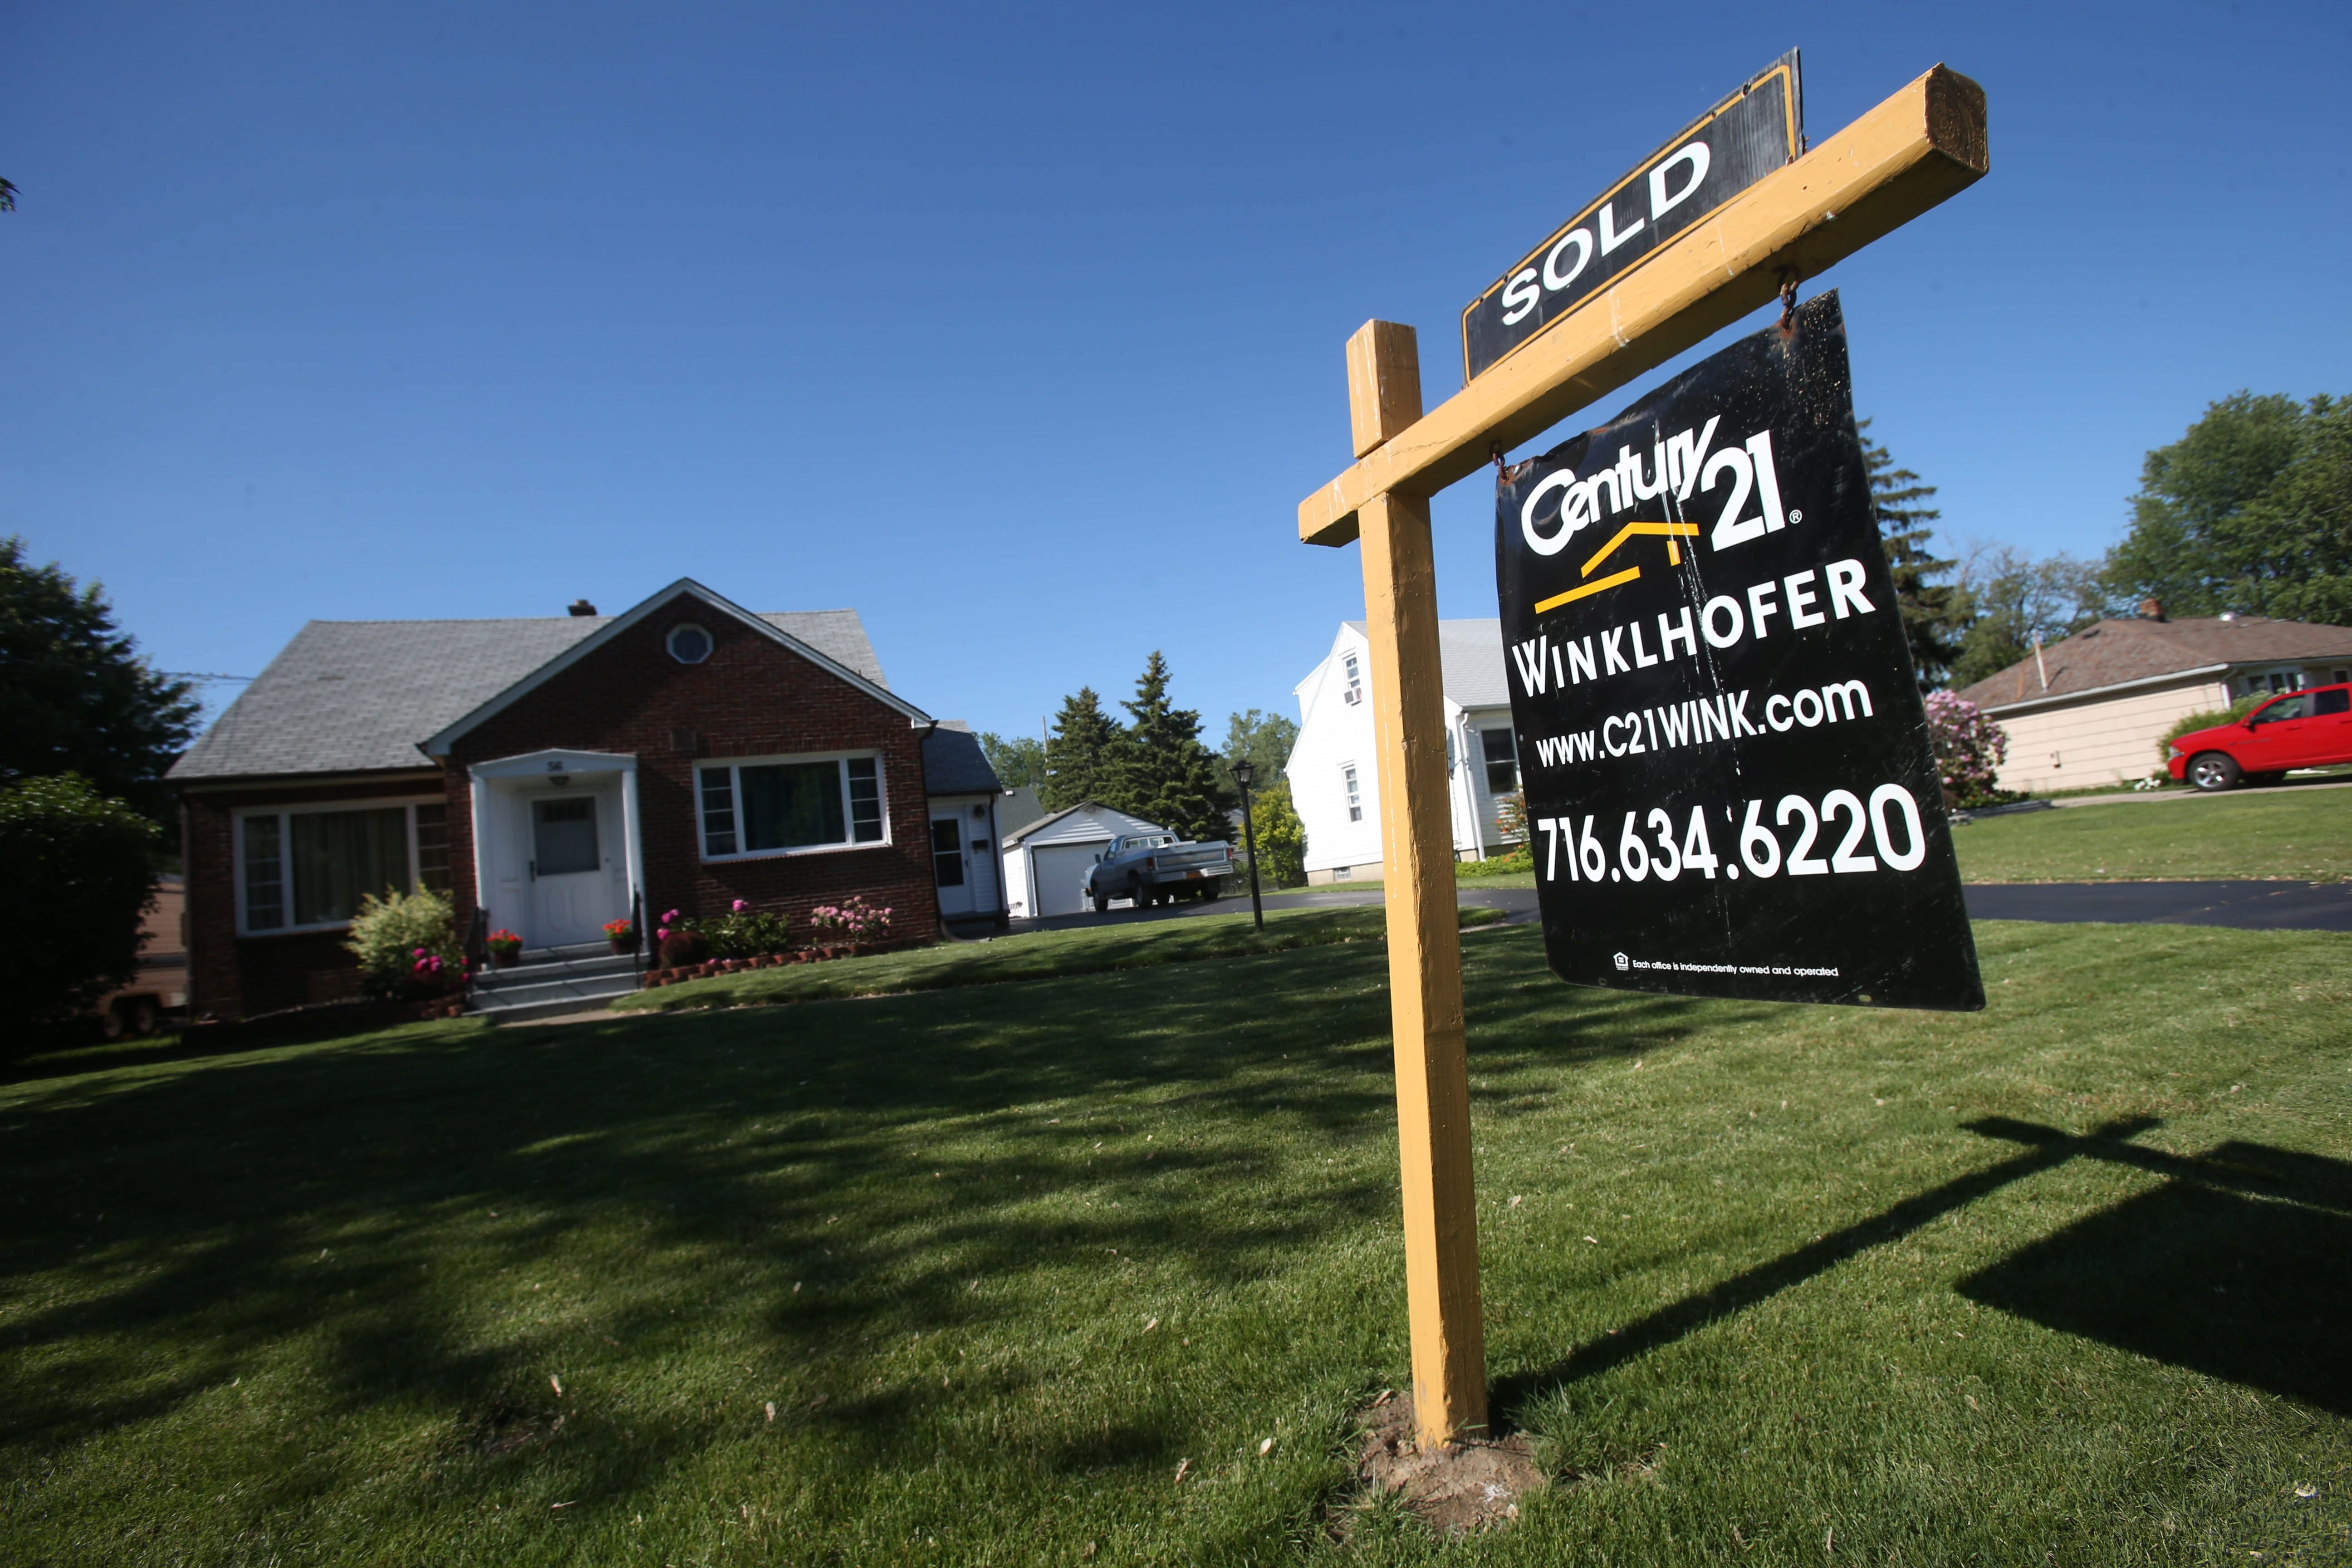 The real estate market in the Buffalo Niagara region has been hot this summer.